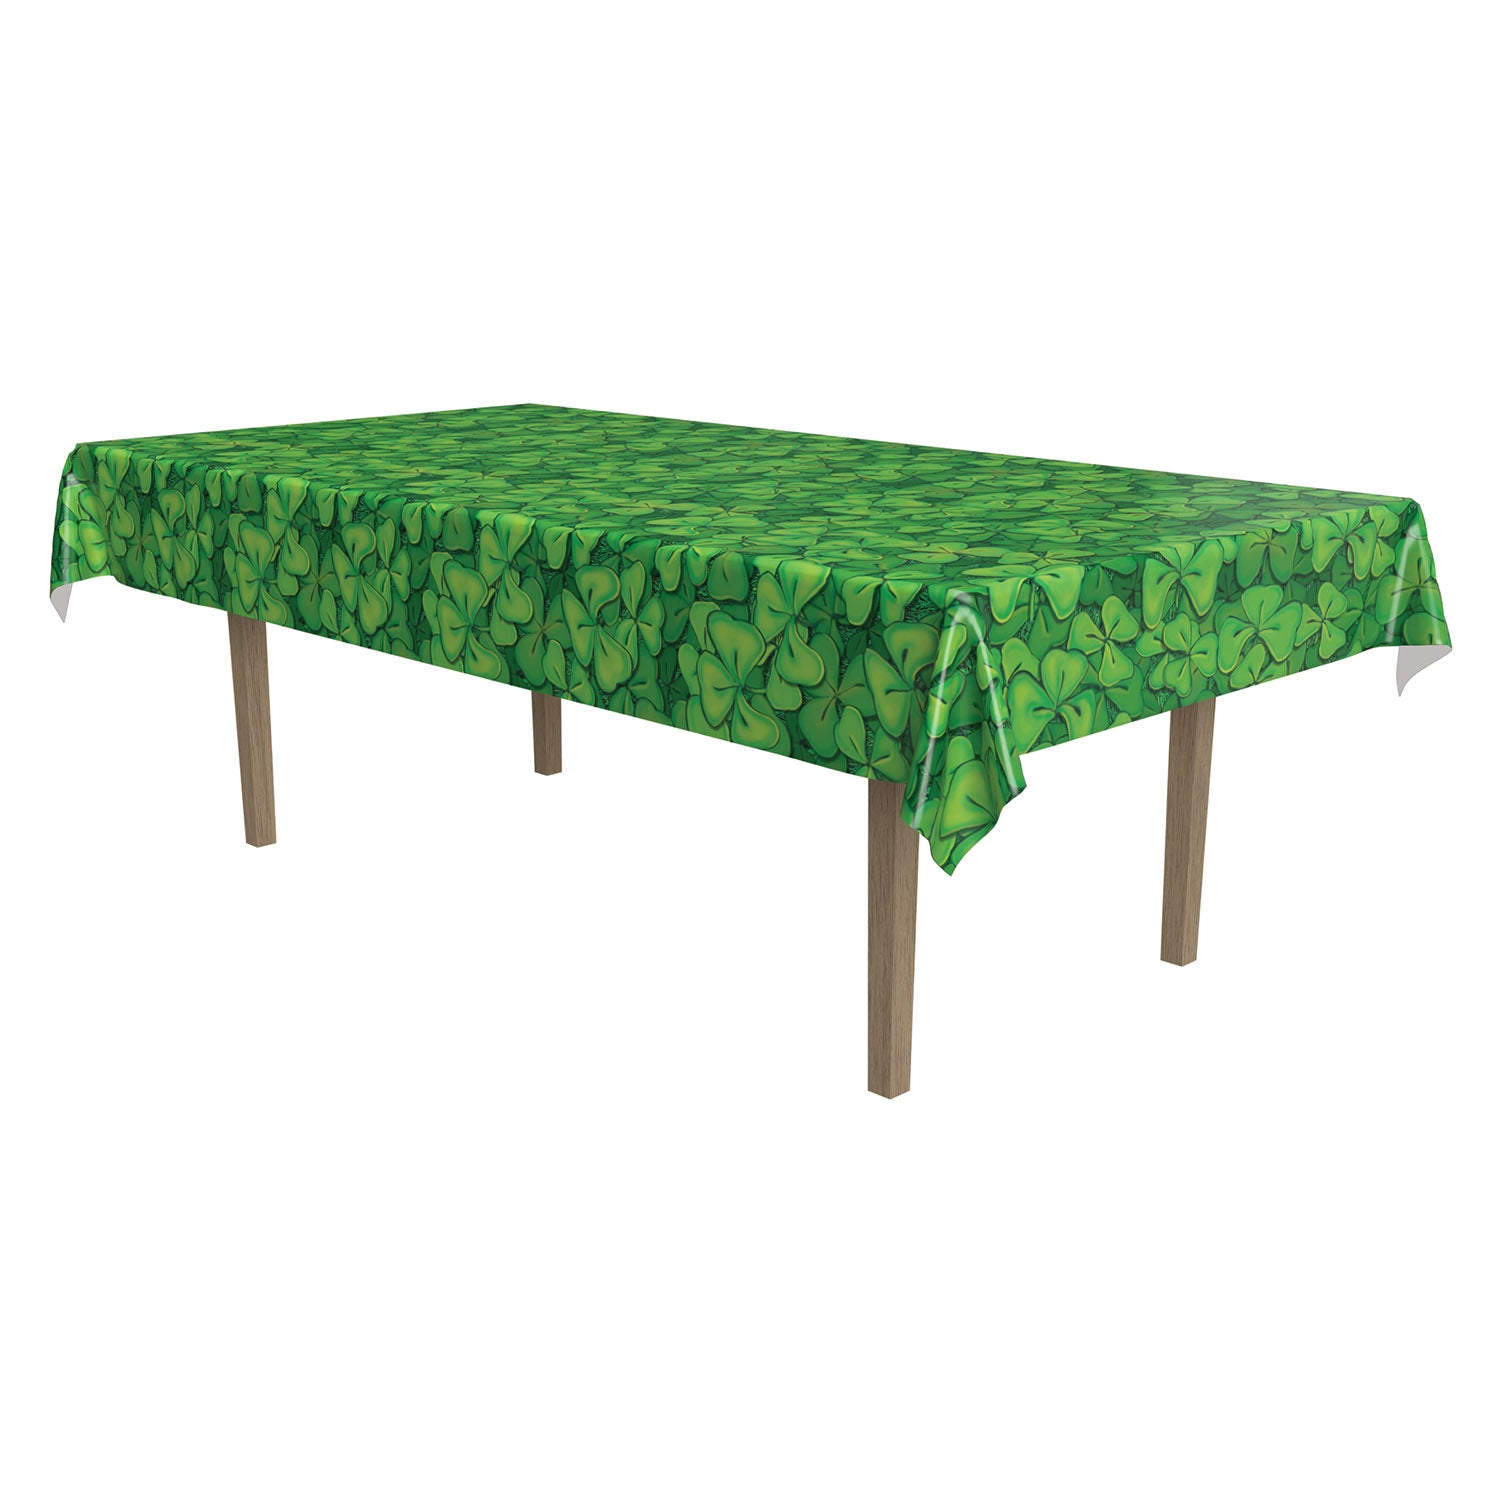 Shamrock Tablecover by Beistle - St. Patricks Day Theme Decorations